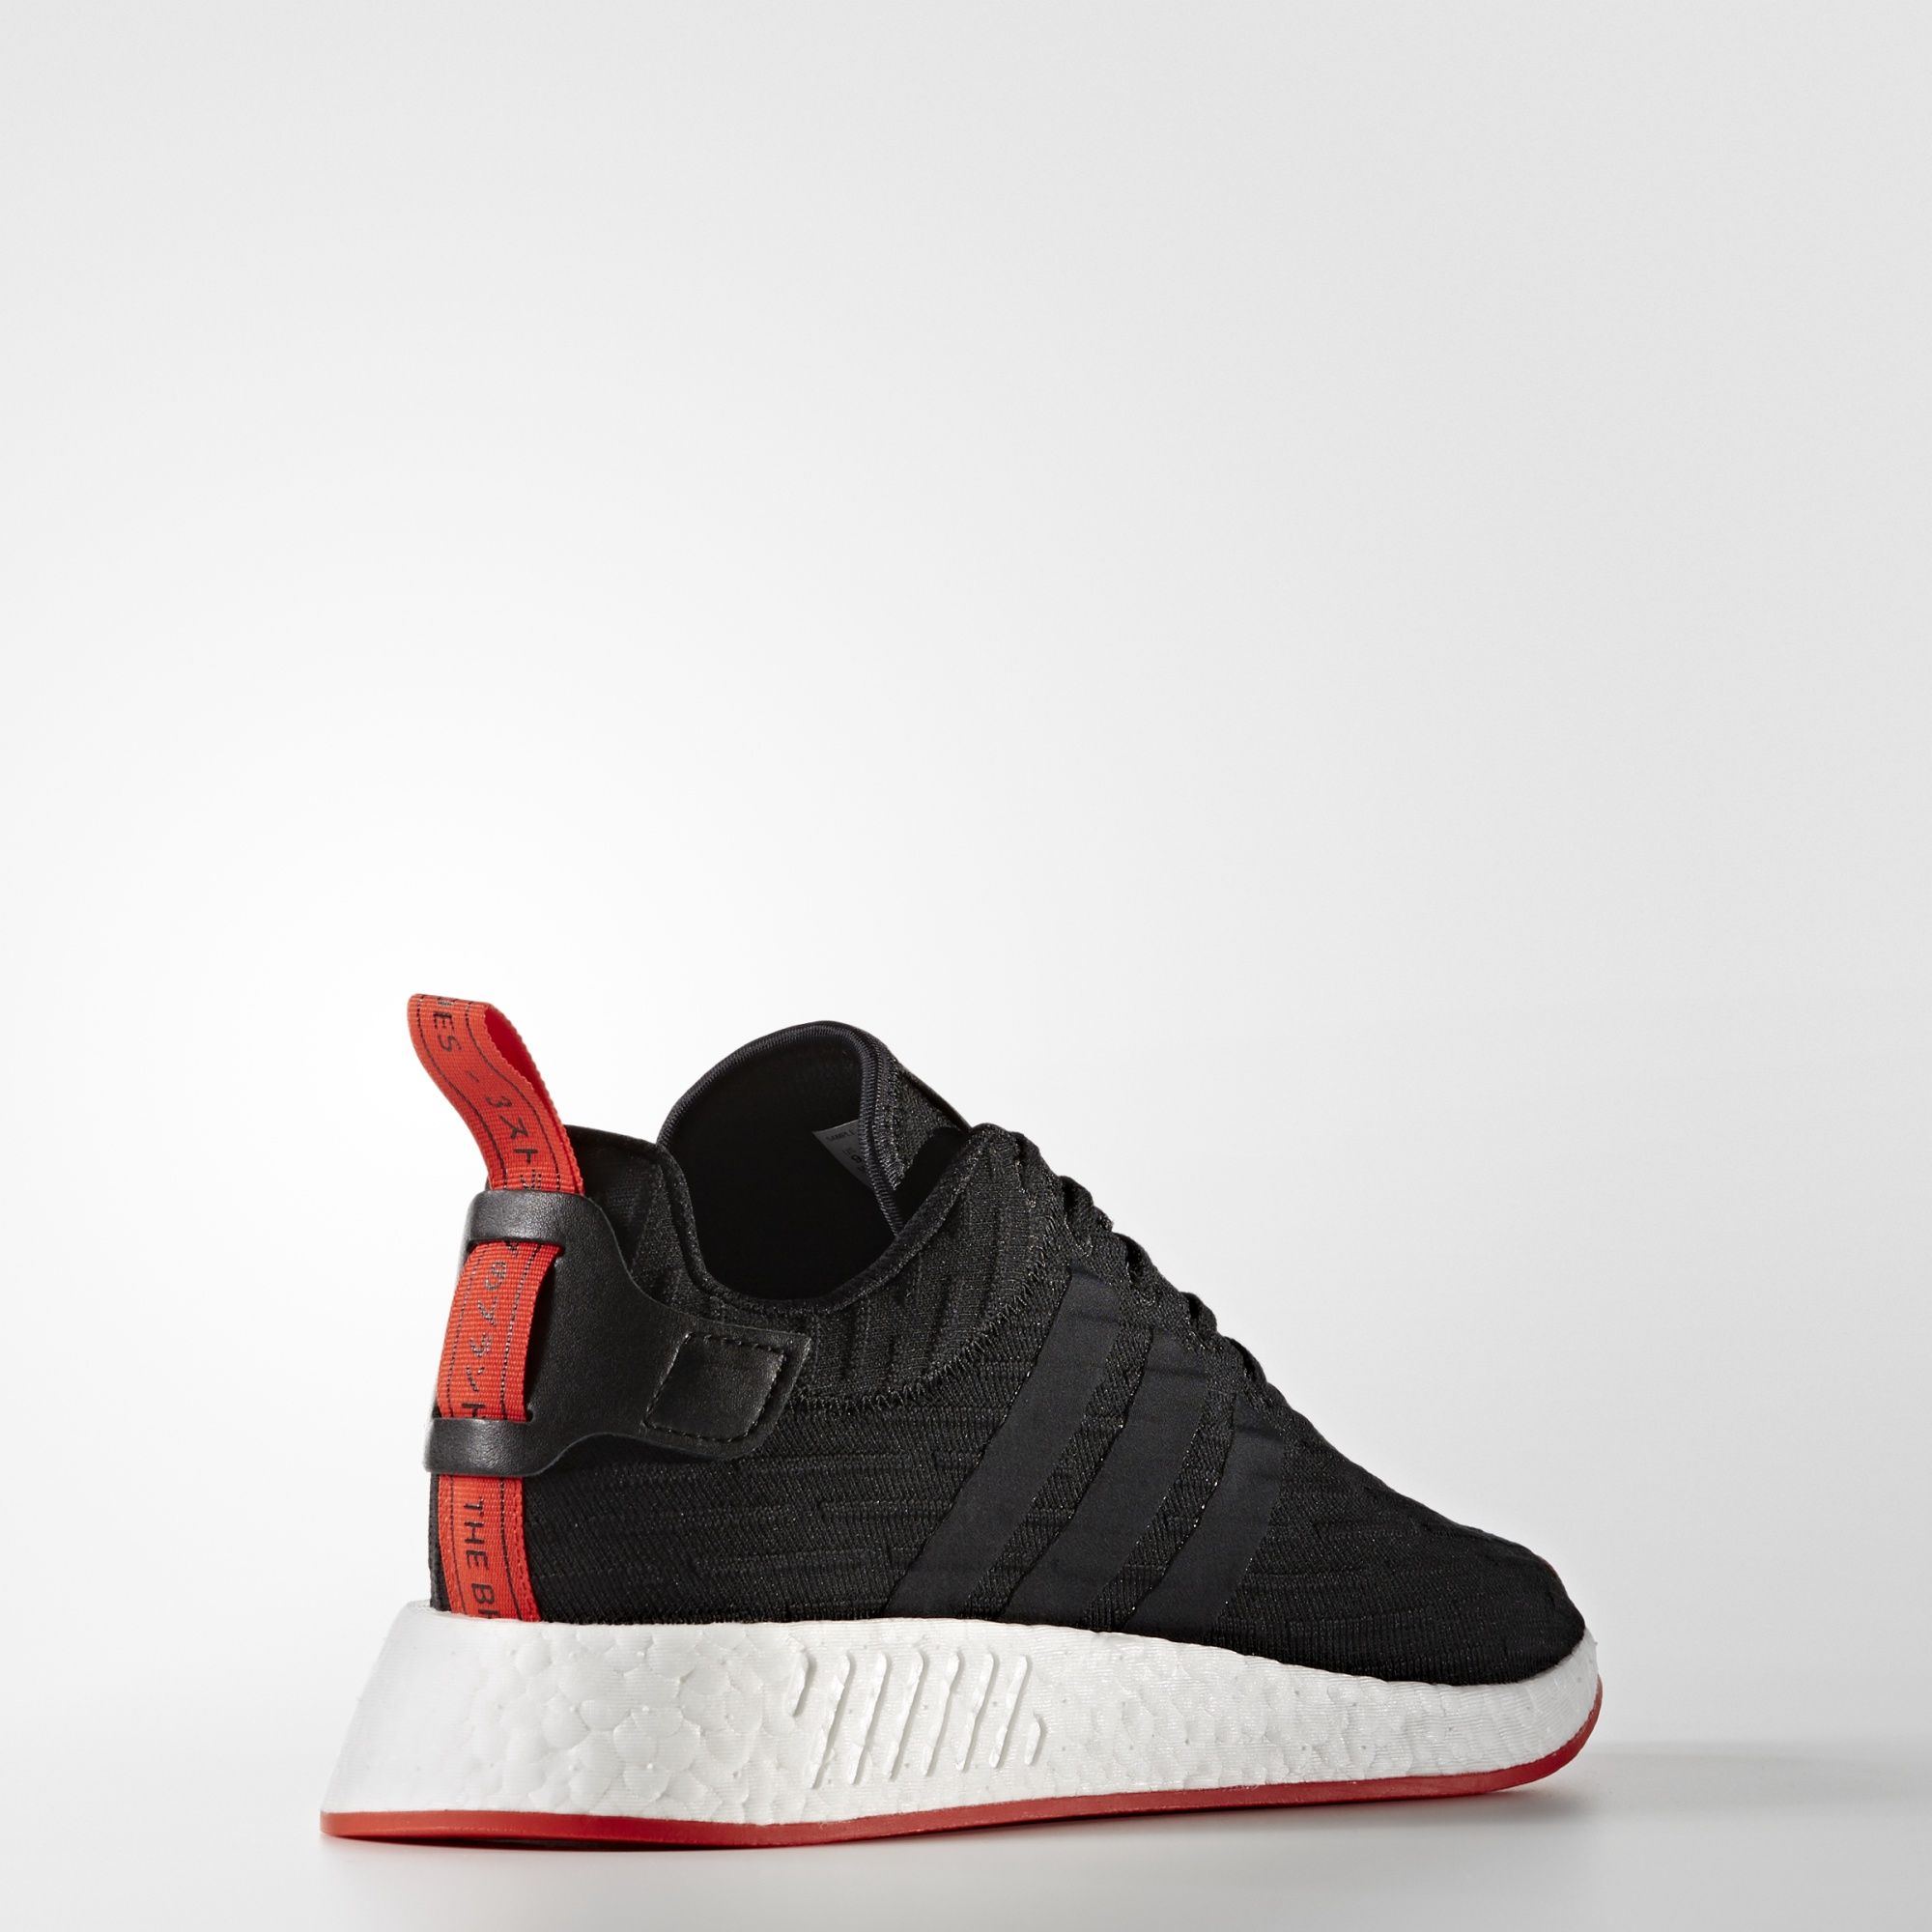 adidas nmd r2 primeknit black core red BA7252 4